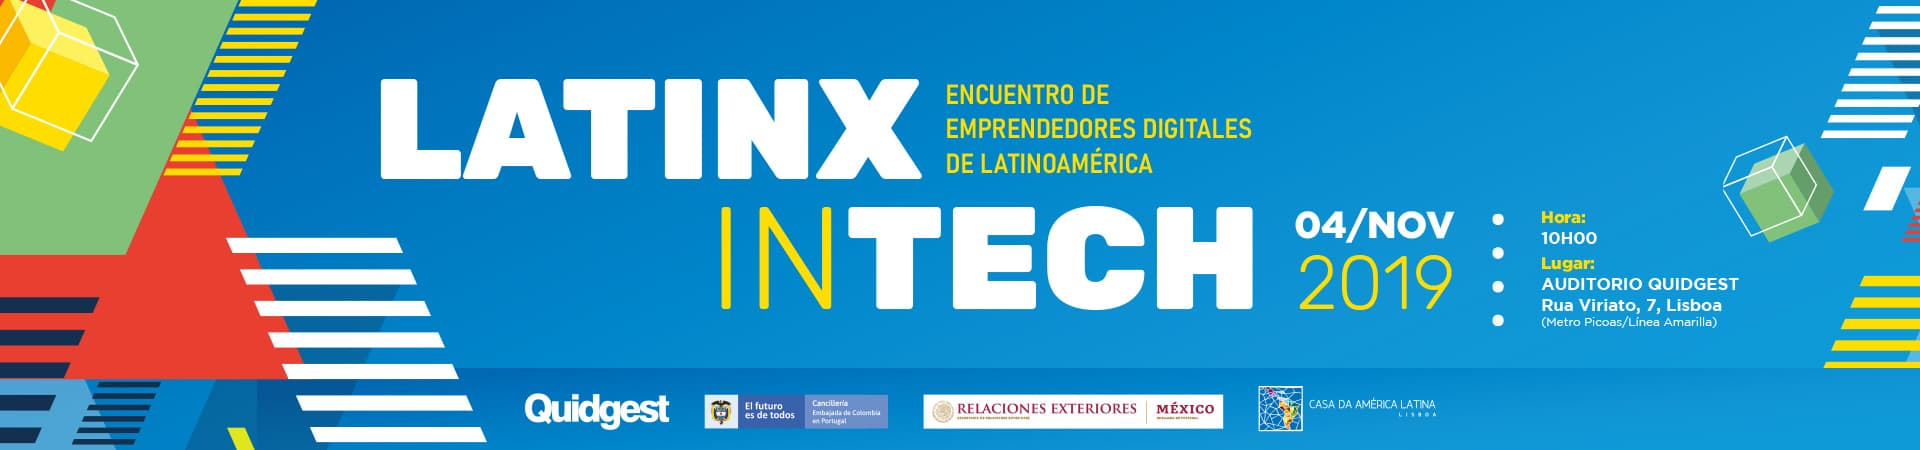 evento latinx in tech